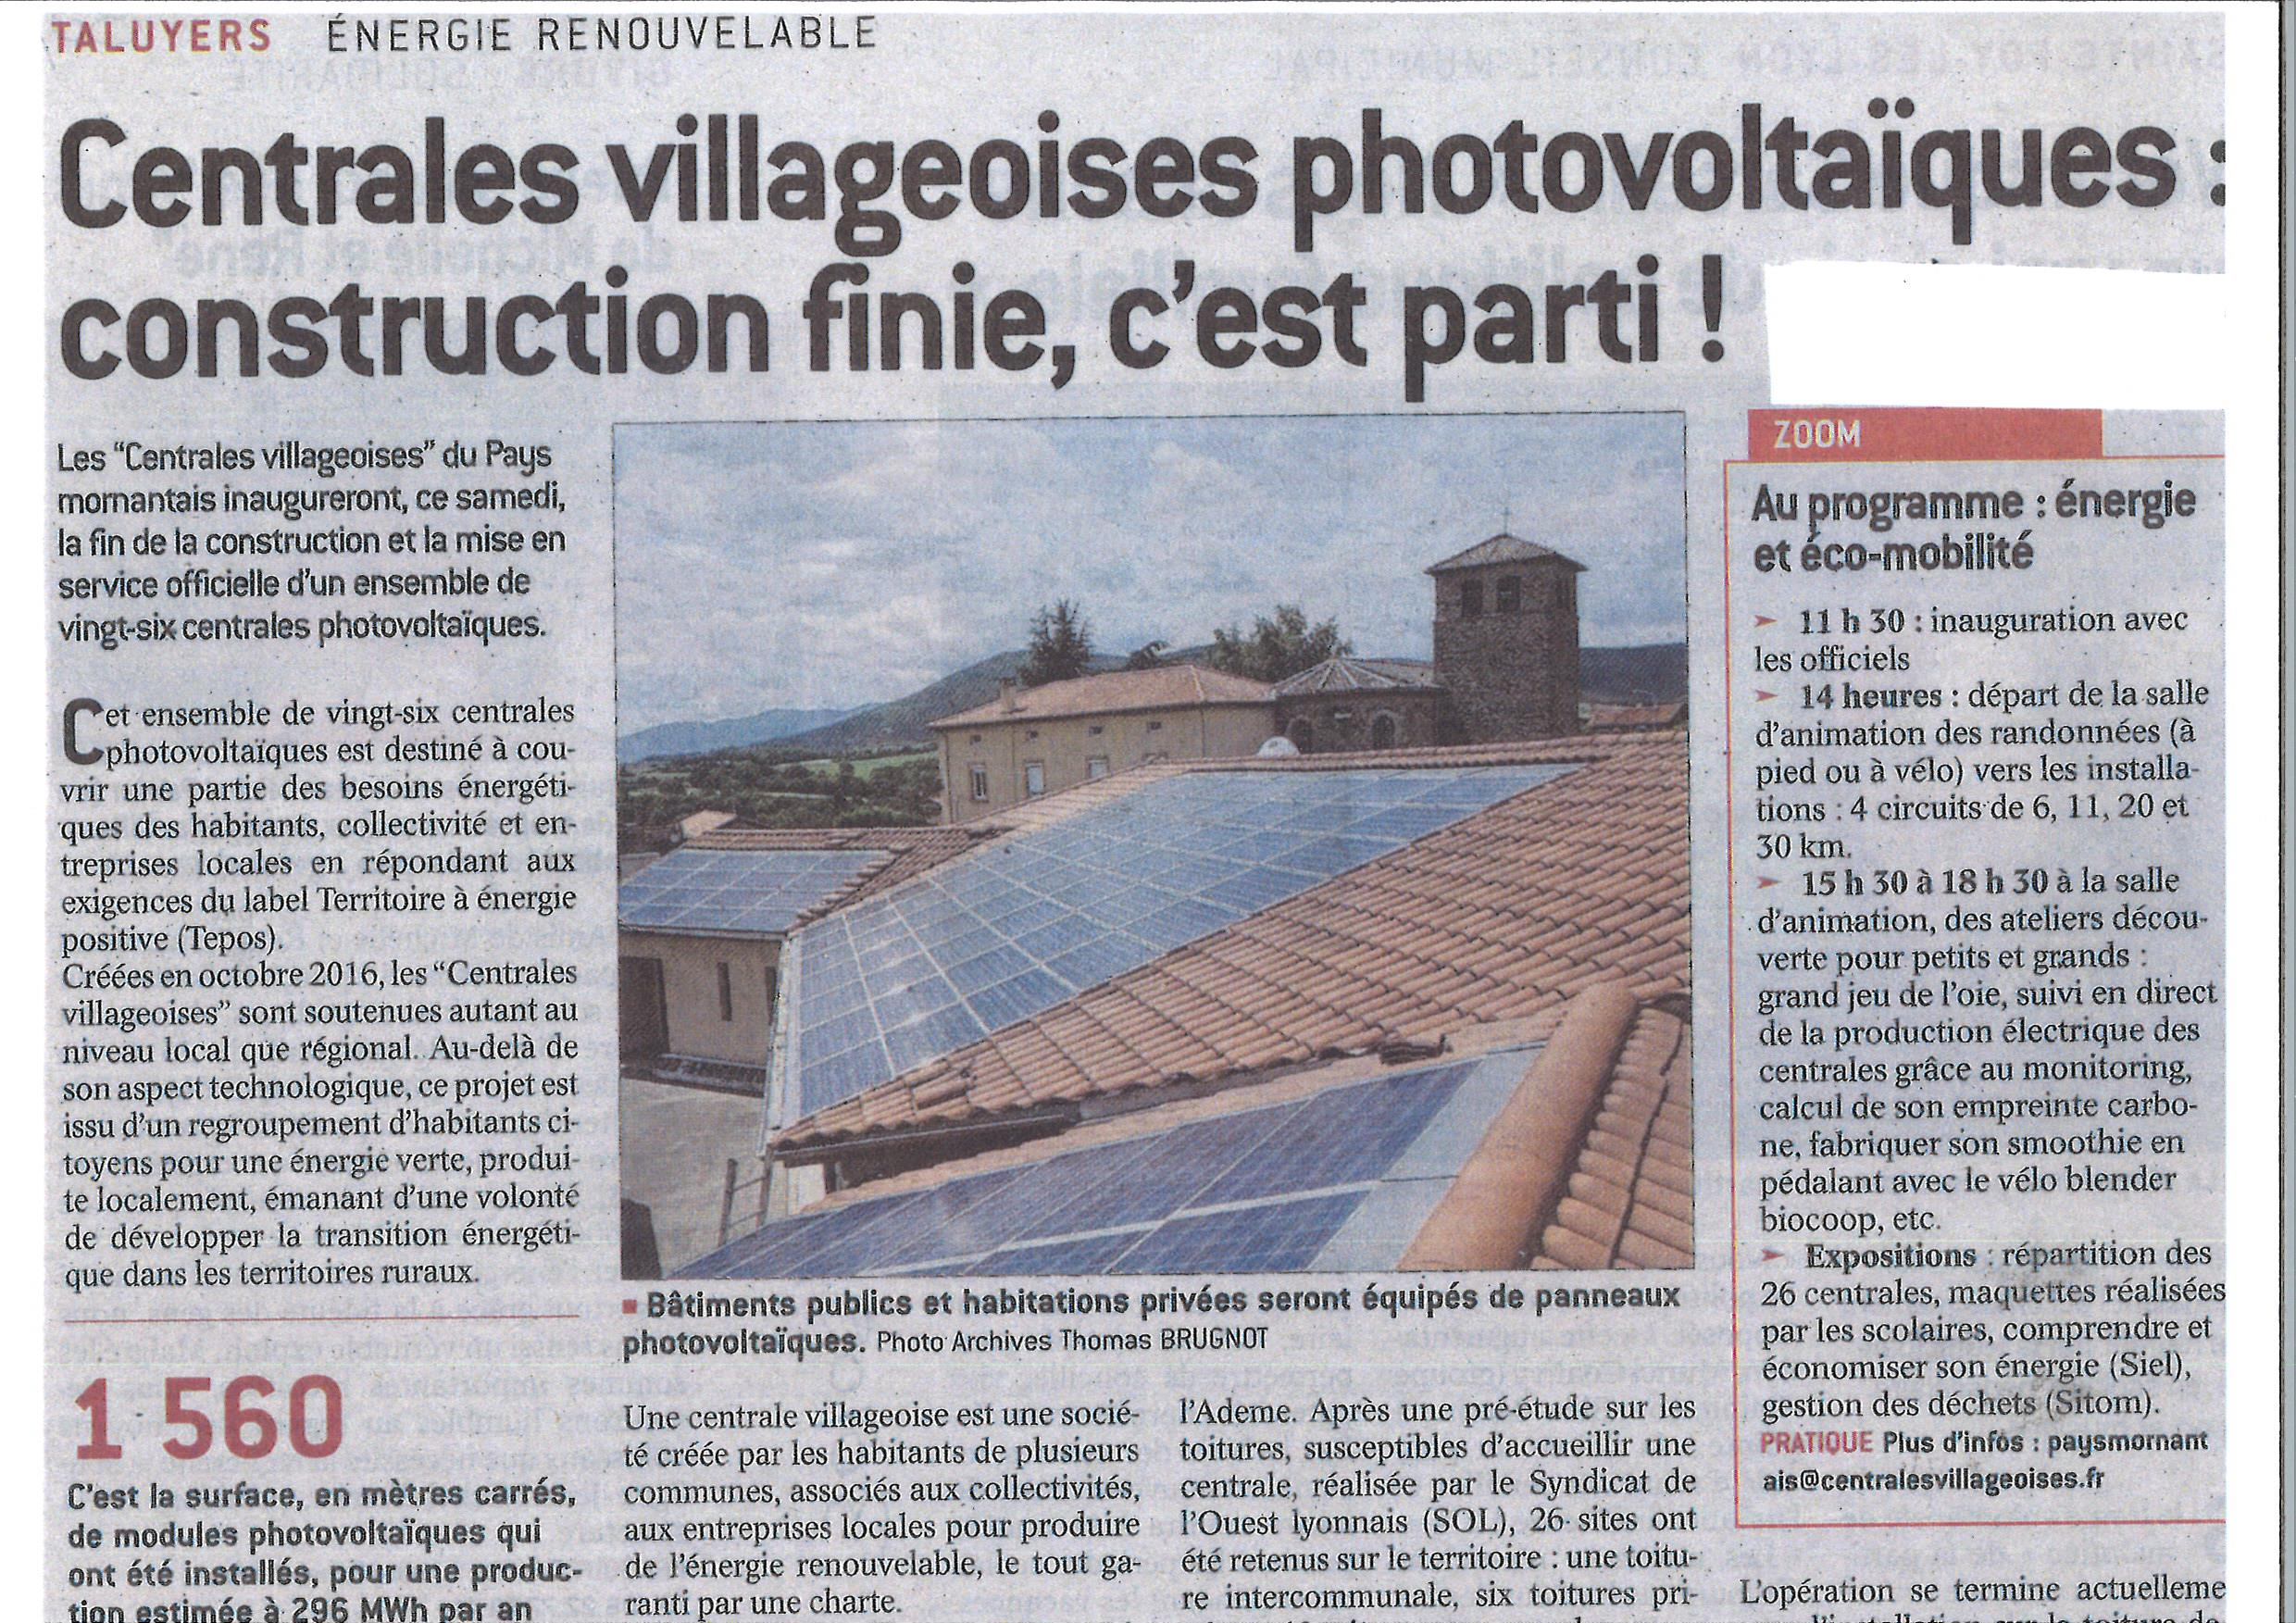 2018-05-30 CENTRALES VILLAGEOISES PHOTOVOLTAIQUES - CONSTRUCTION FINIE C EST PARTI